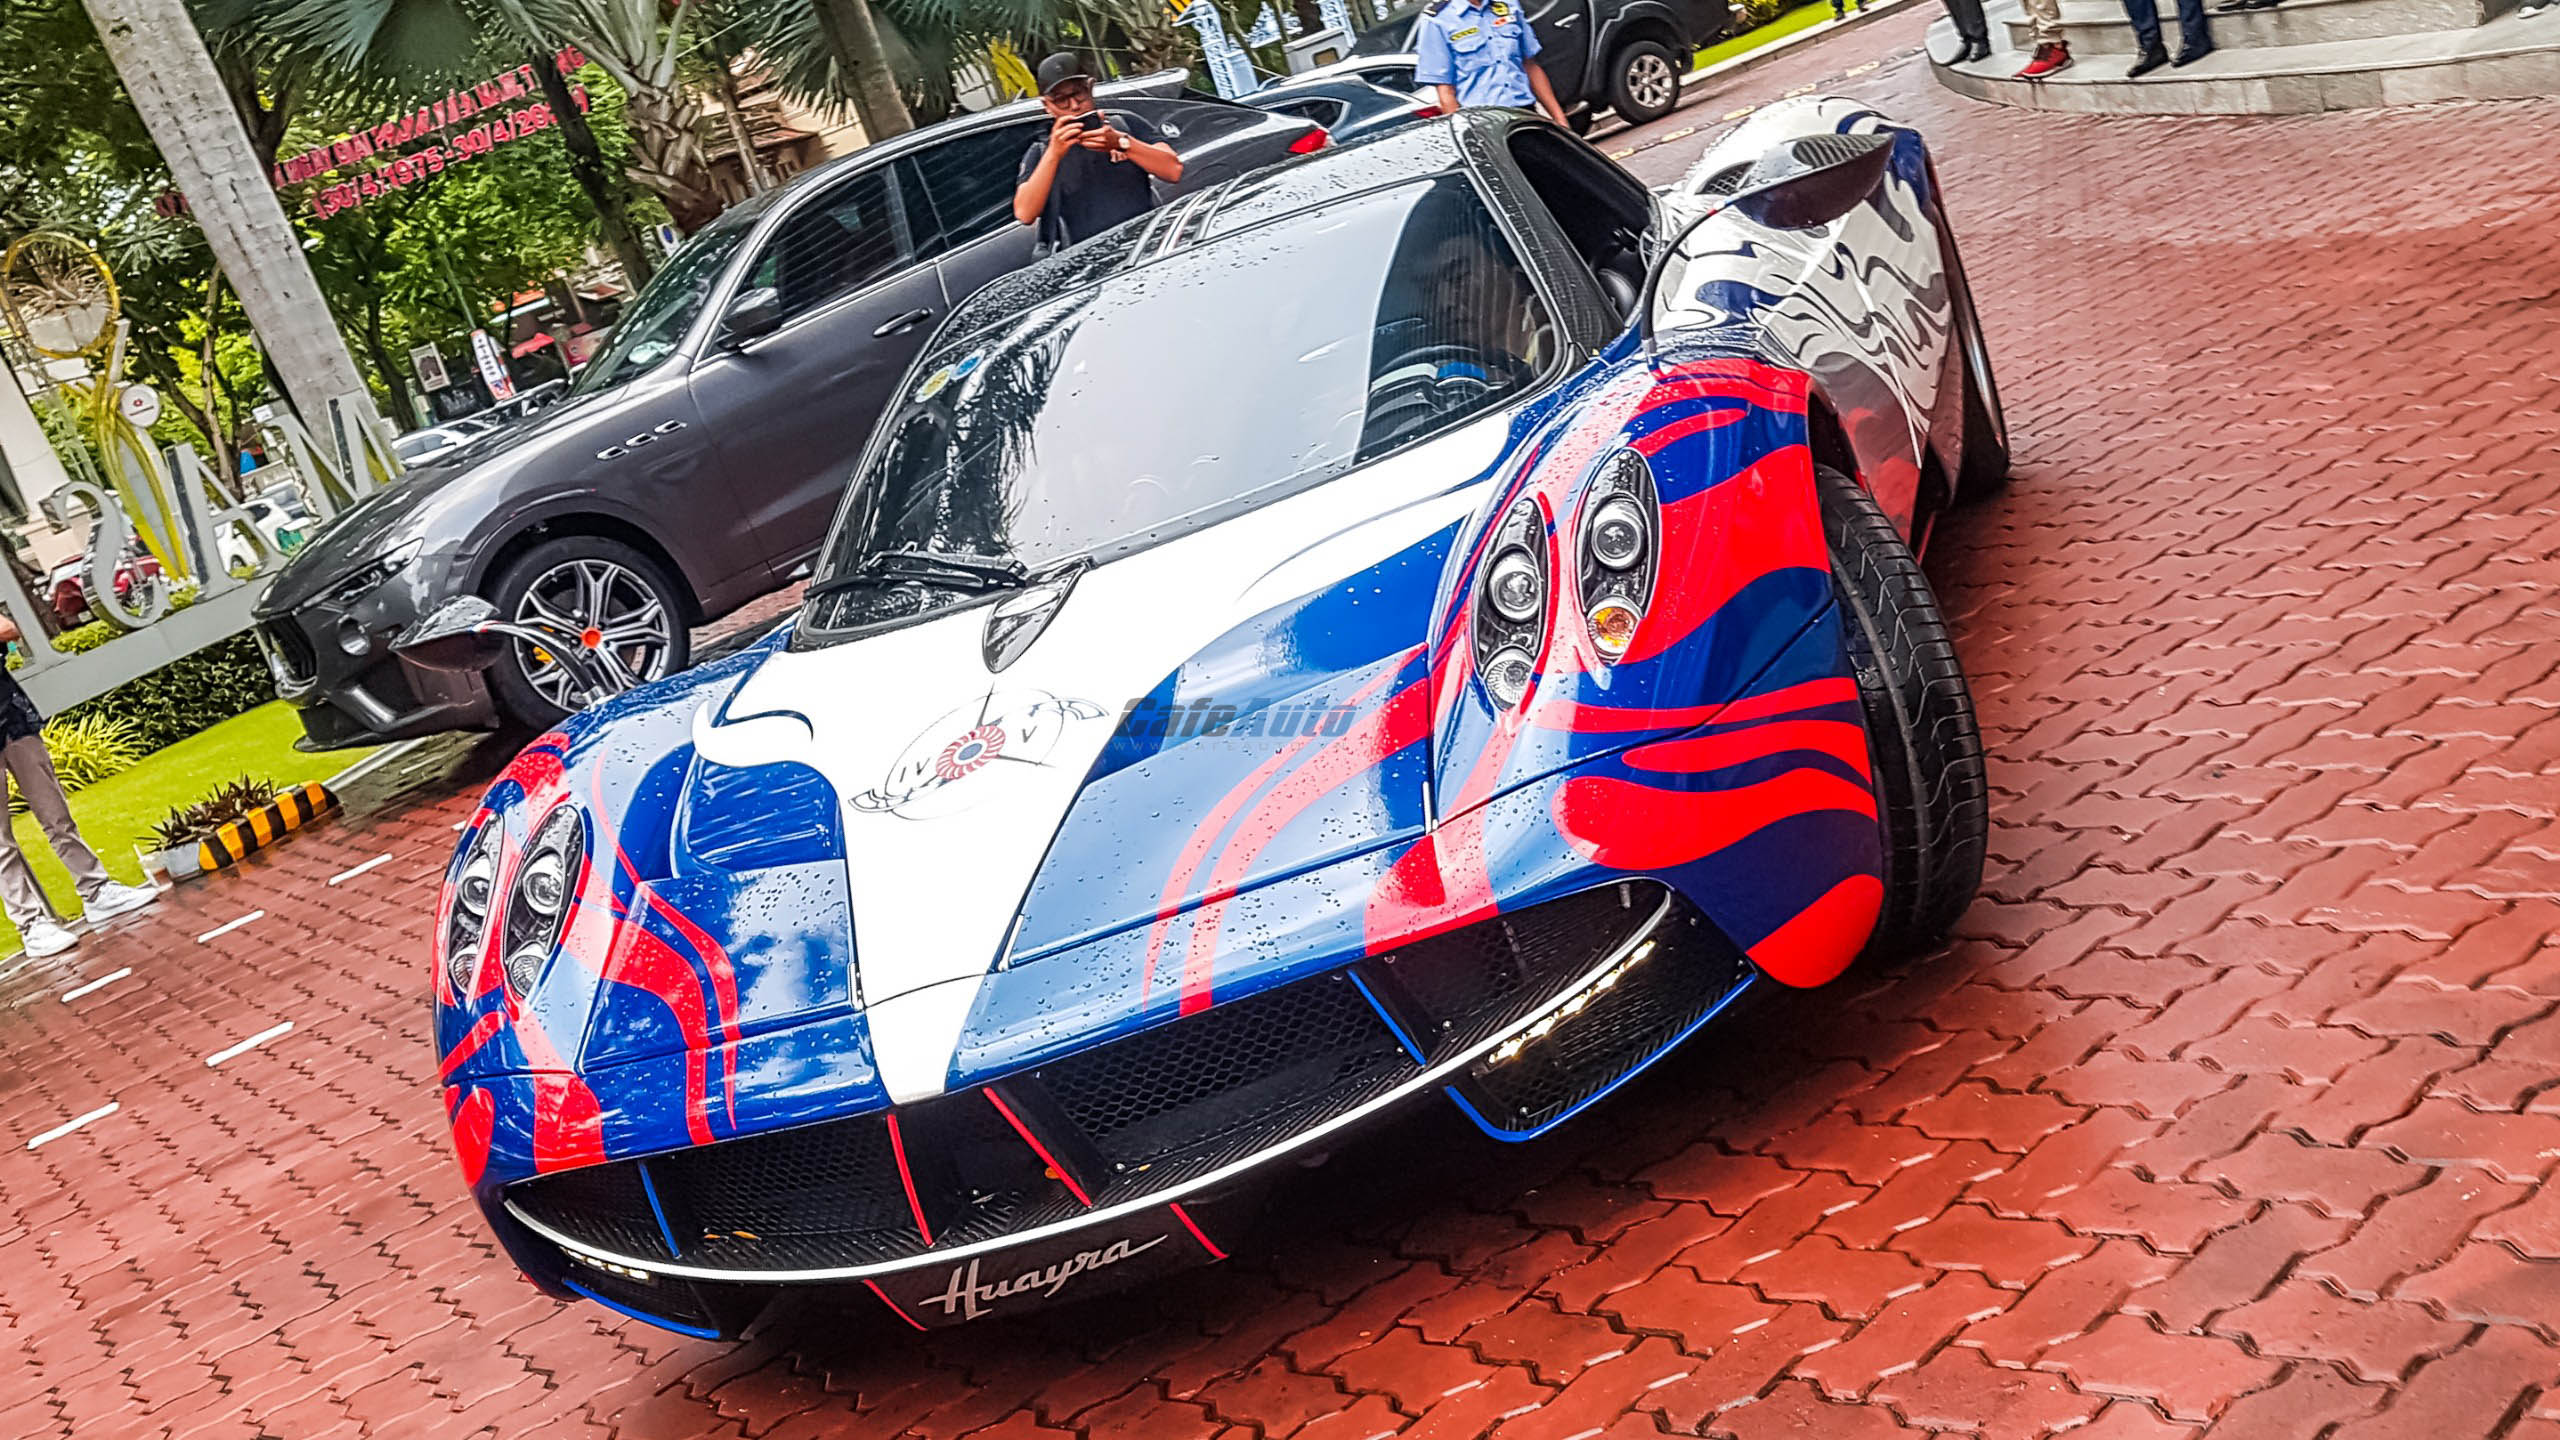 paganihuayra-cafeautovn-7